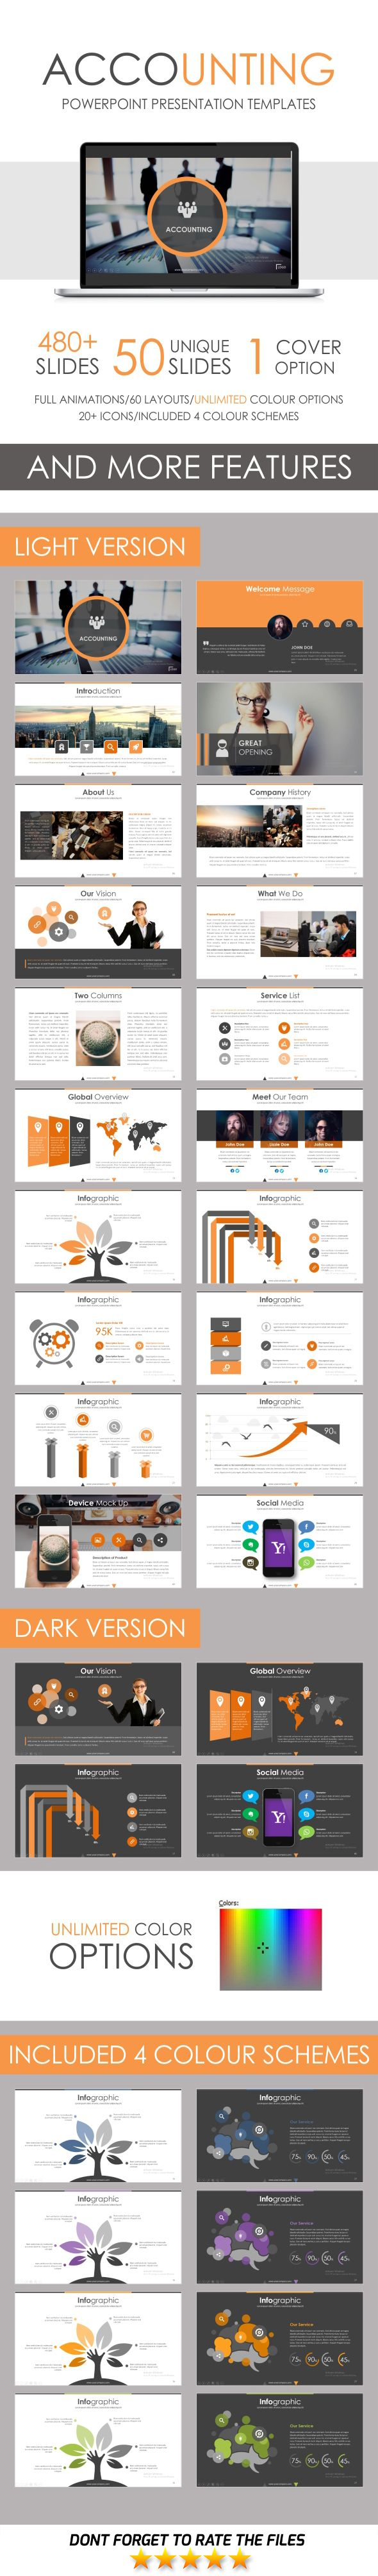 Accounting PowerPoint Template. Download here: http://graphicriver.net/item/accounting-powerpoint-template/16610157?ref=ksioks